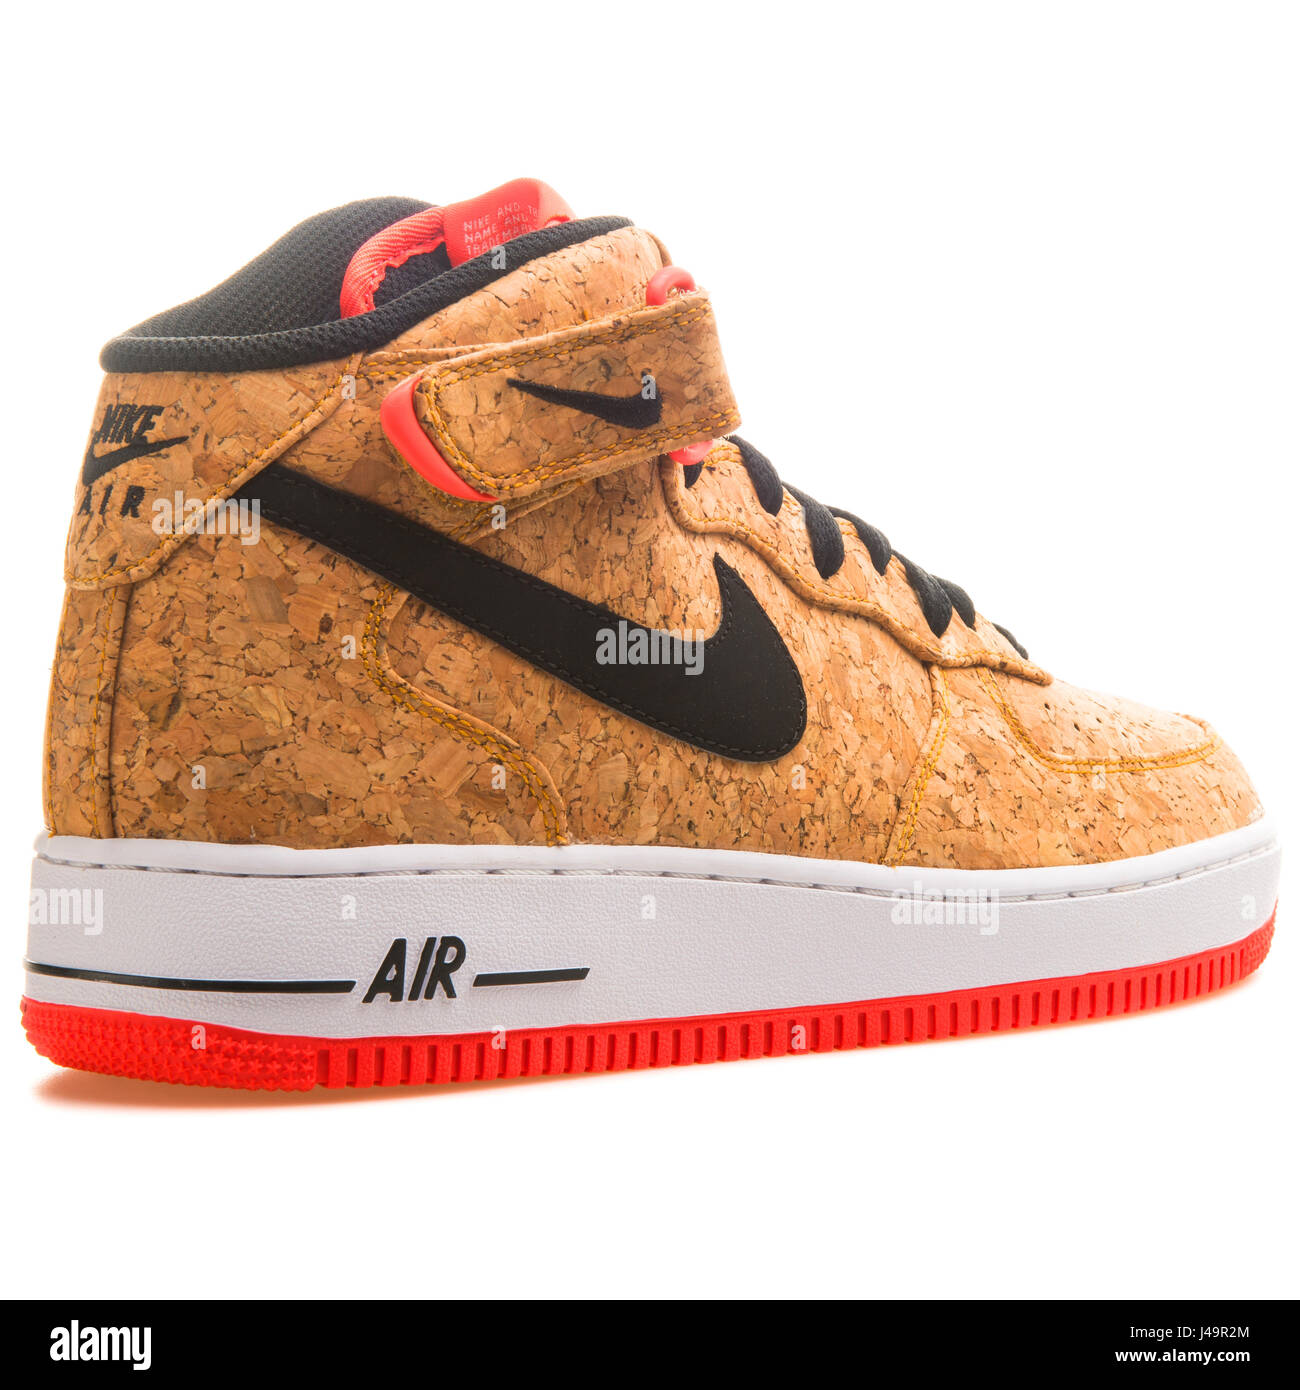 Nike Air Force 1 Mid '07 Cork 748282 100 Stock Photo